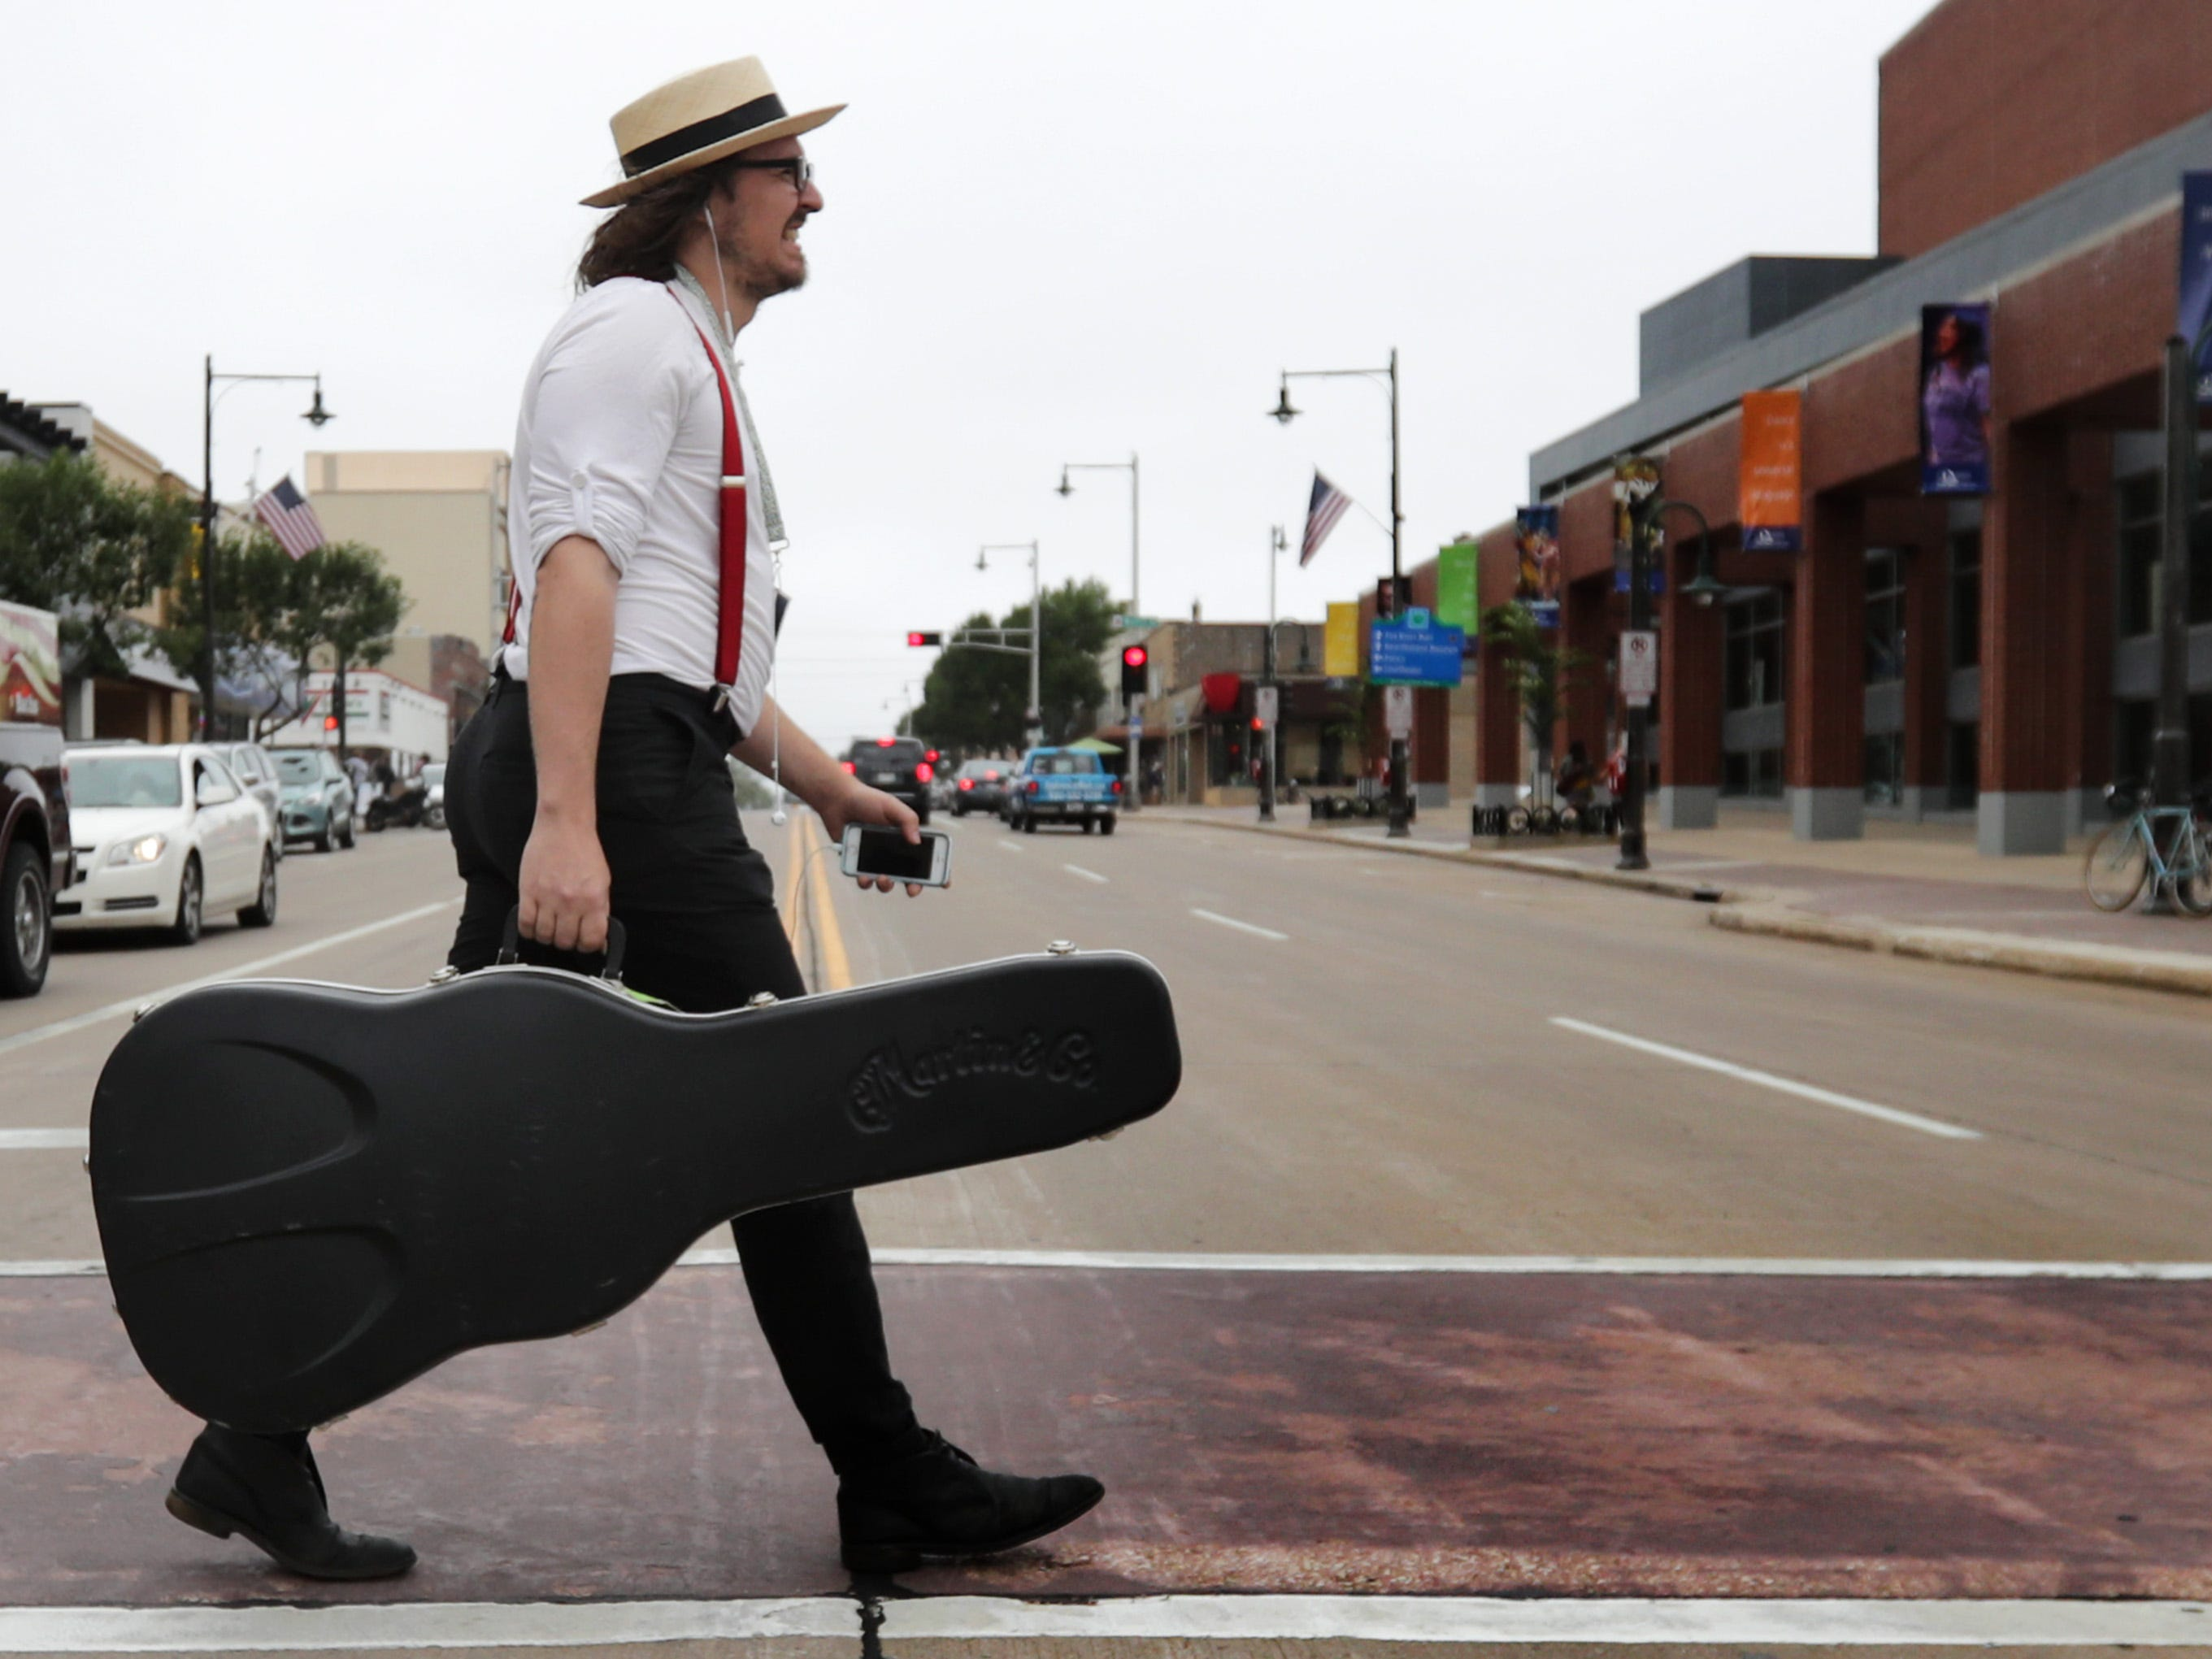 Adrian Krygowski, of Adrian and Meredith, walks to the Performing Arts Center for a Facebook Live event during the Mile of Music festival Thursday, August 2, 2018, in Appleton, Wis. Wm. Glasheen/USA TODAY NETWORK-Wisconsin